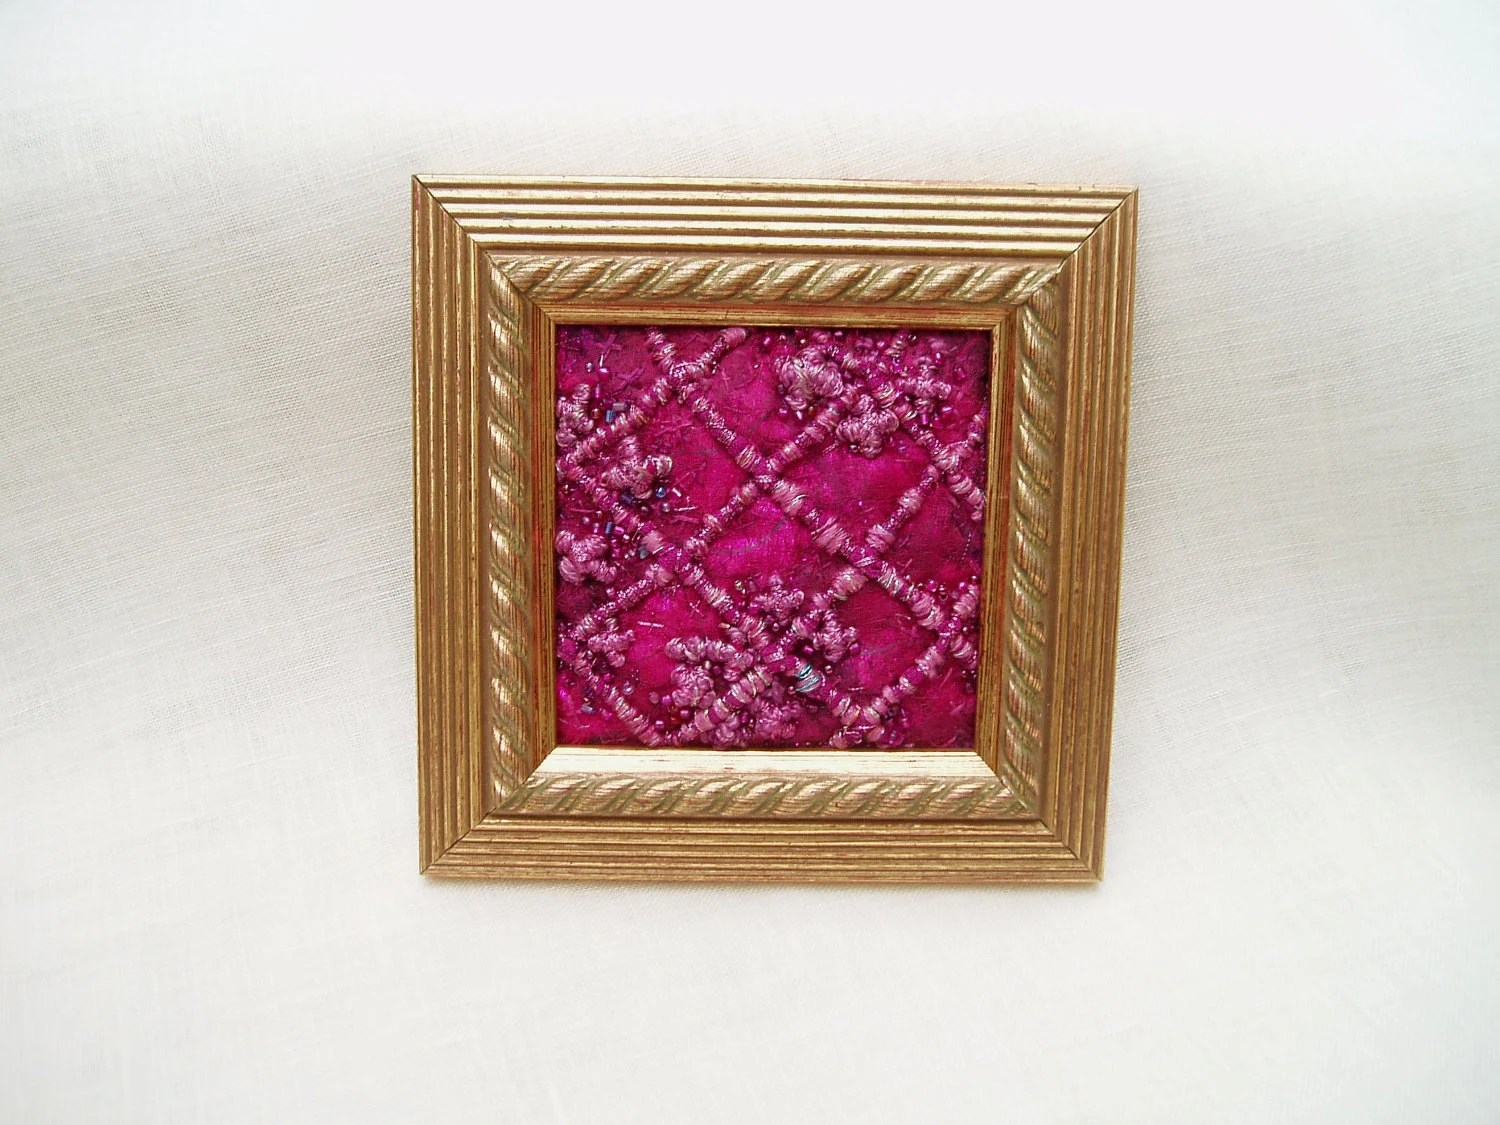 PICTURE FIBRE ART raspberry pink embroidered stitched textile fabric jewel like surface gold frame